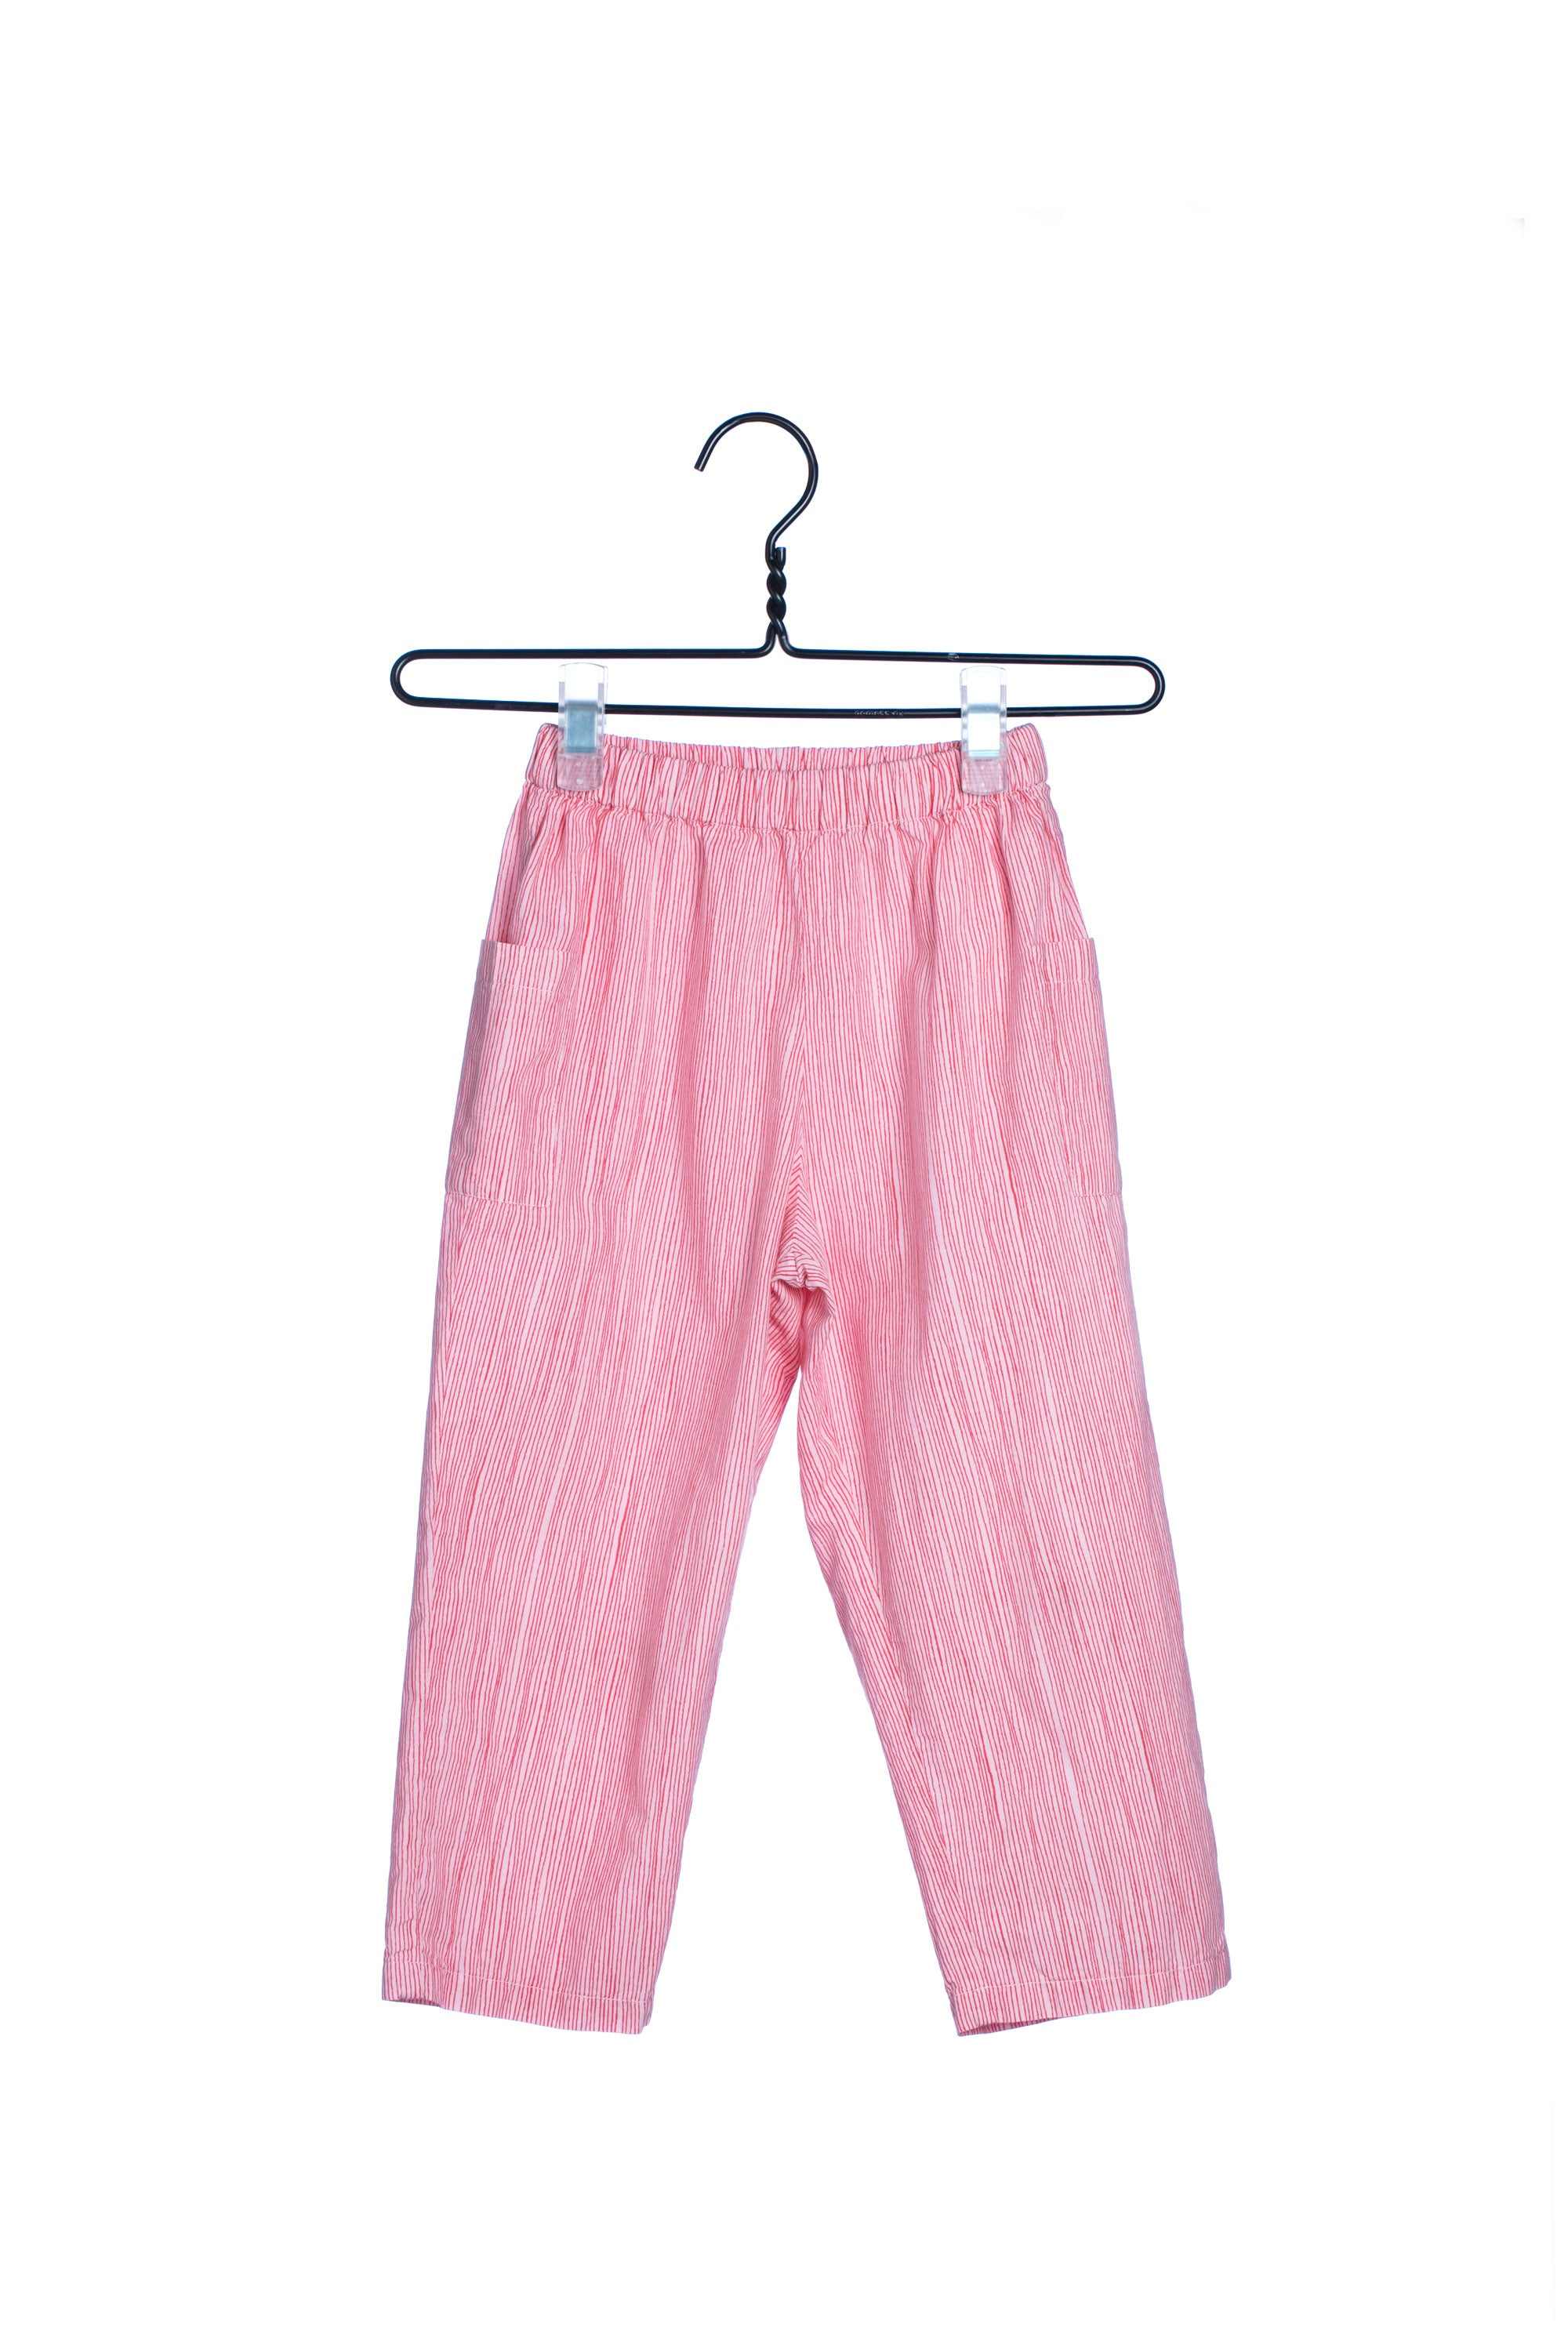 1728 Striped Pants - Pink